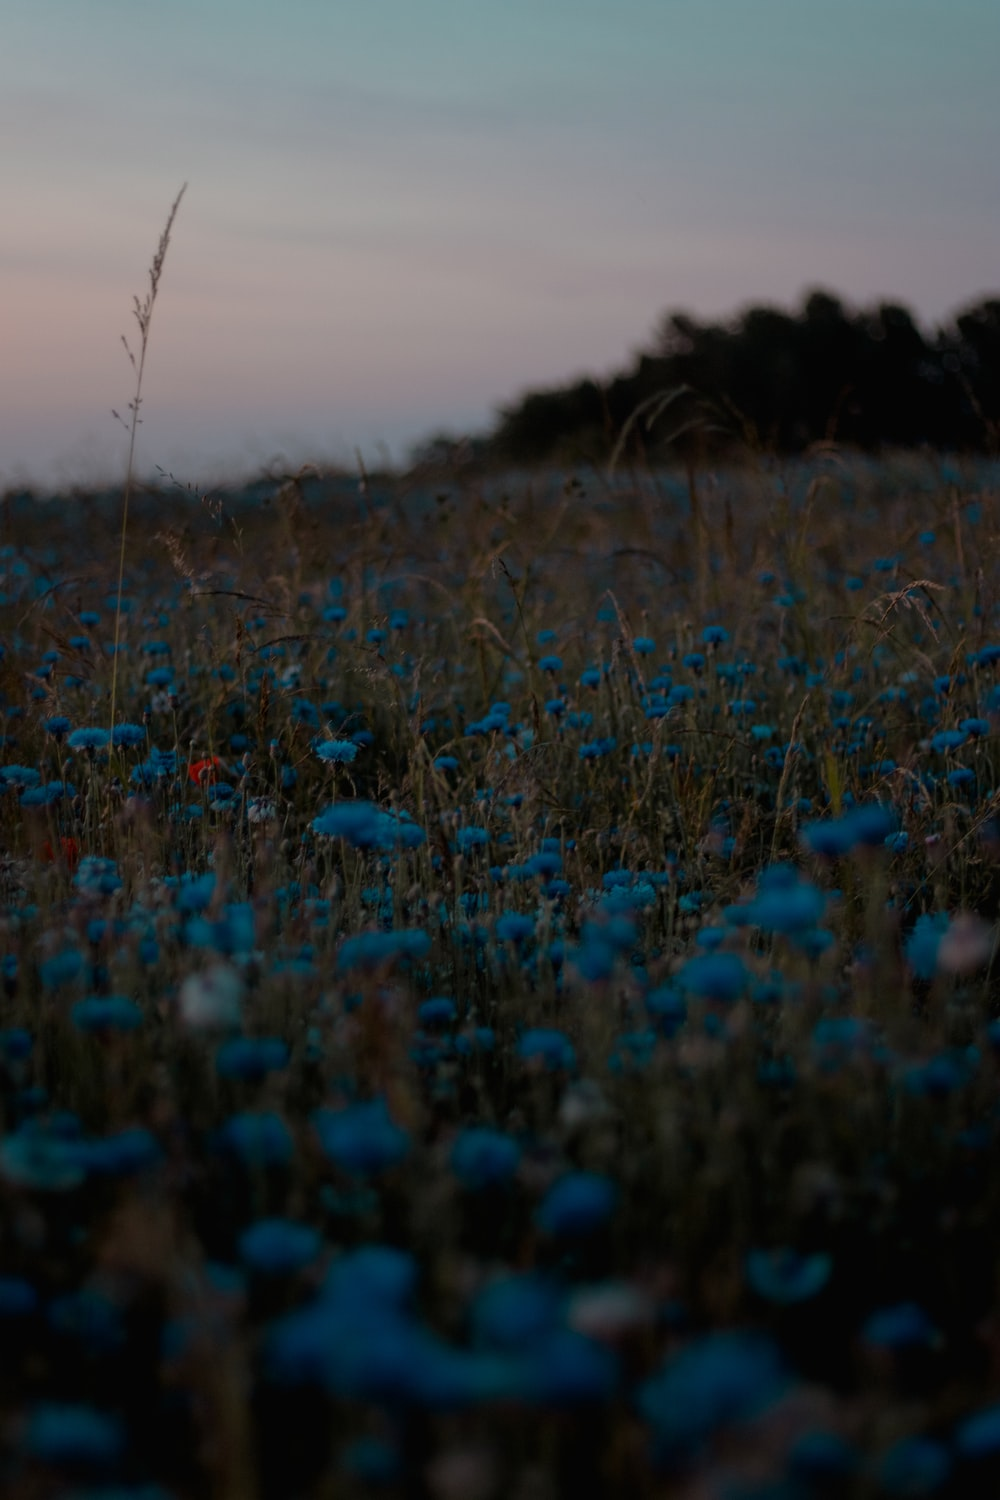 blue flowers on field during daytime